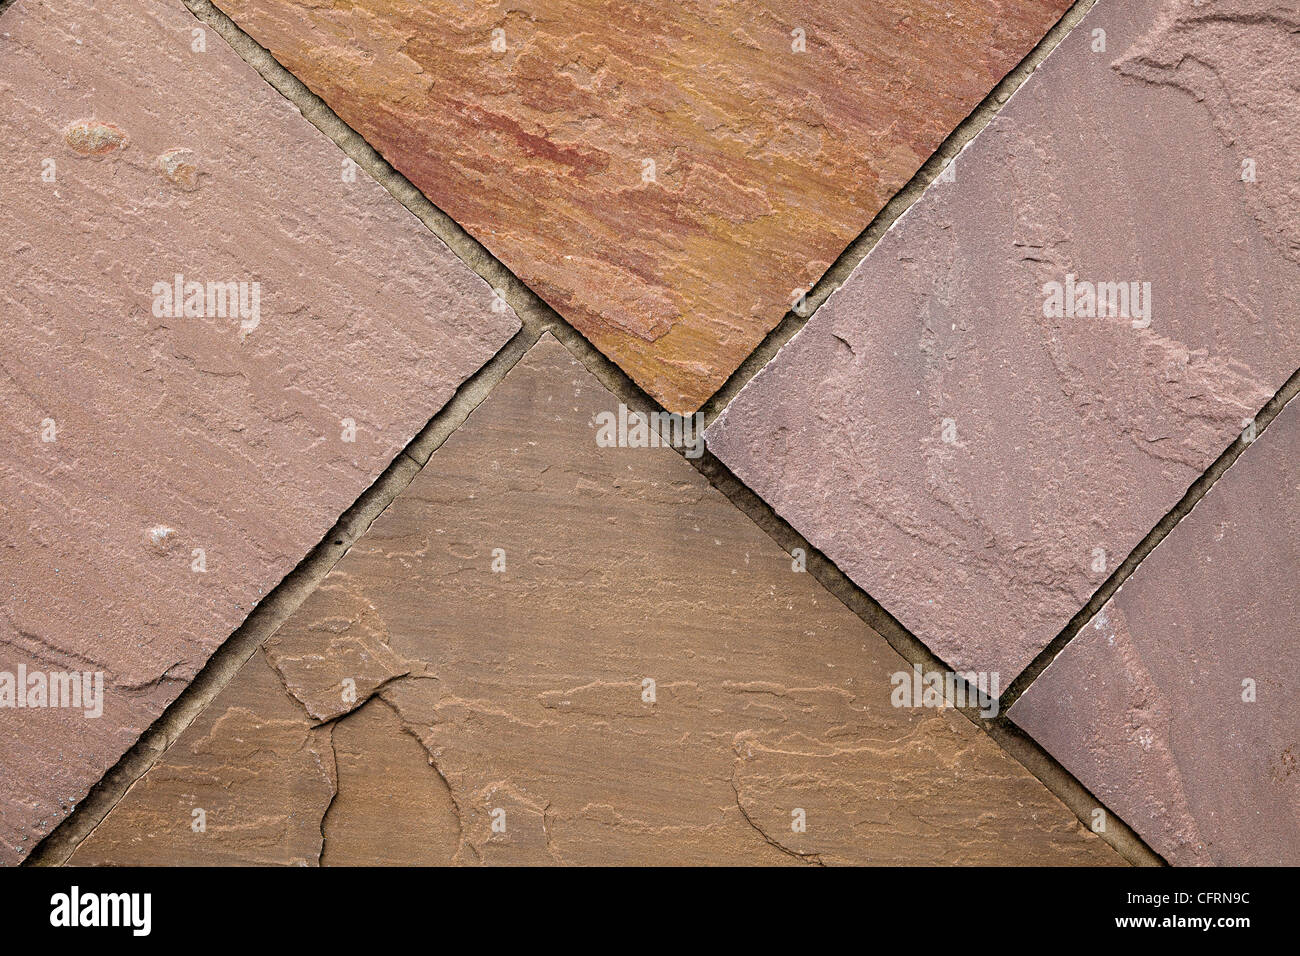 Sandstone flagstones in patio, UK - Stock Image